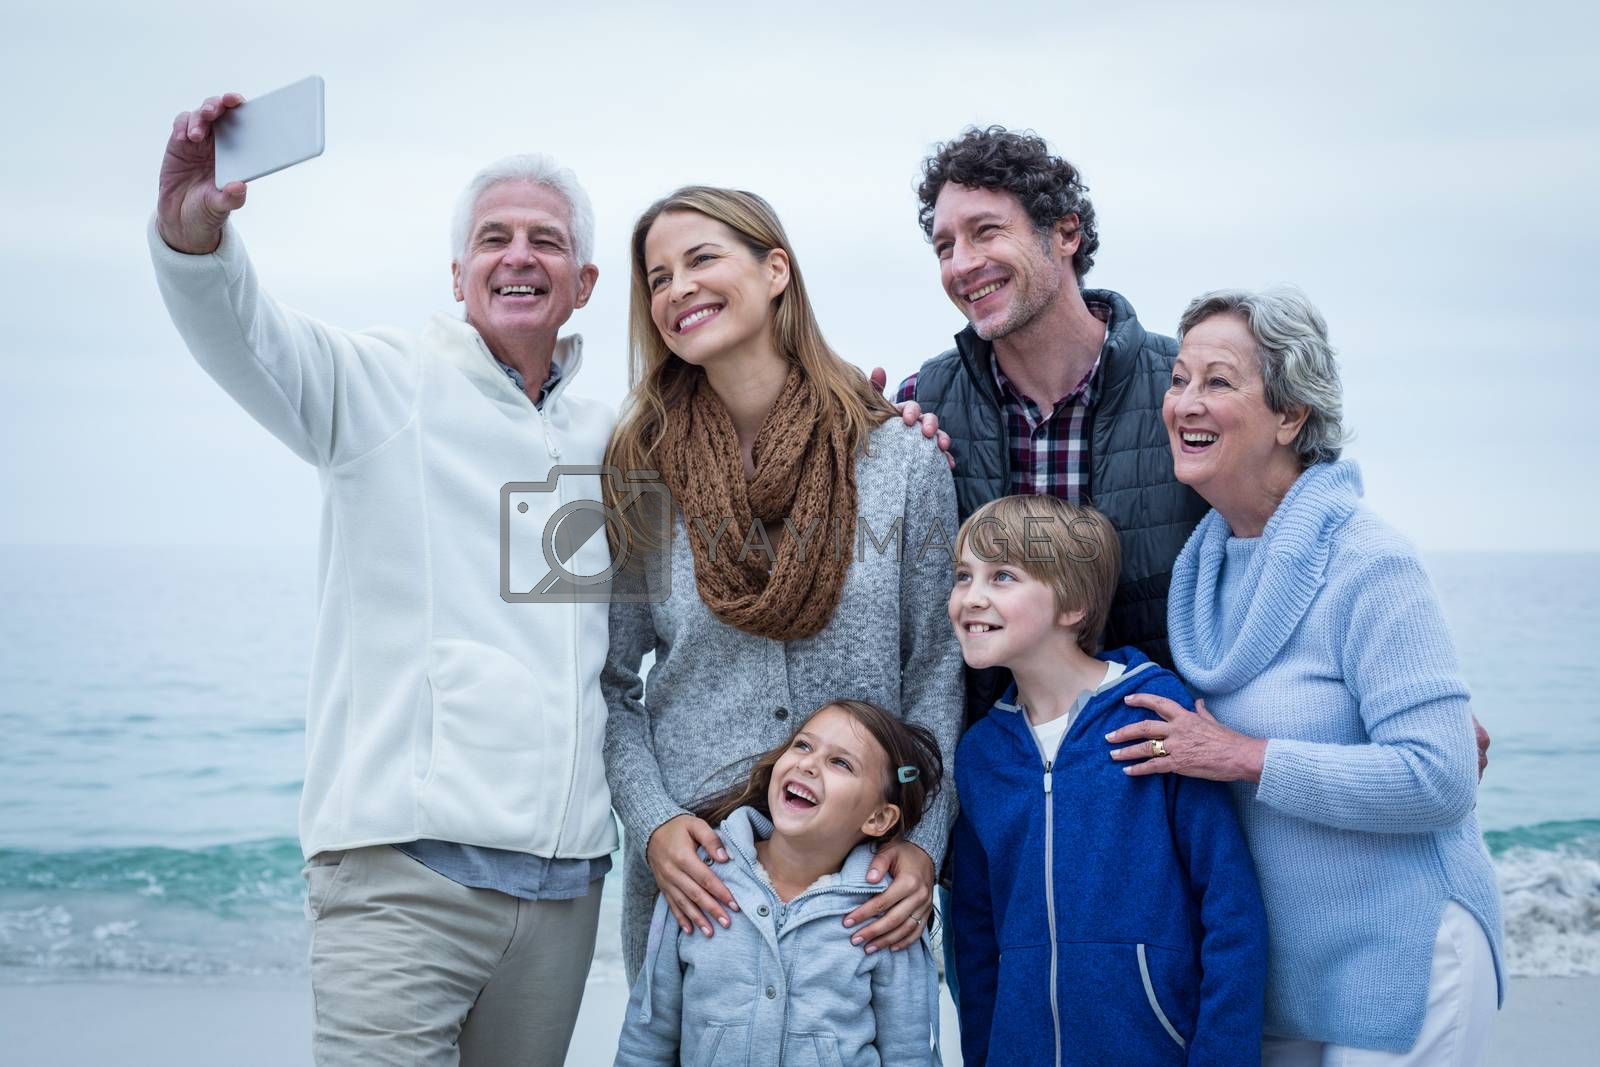 Grandfather taking selfie with cheerful family at sea shore against sky